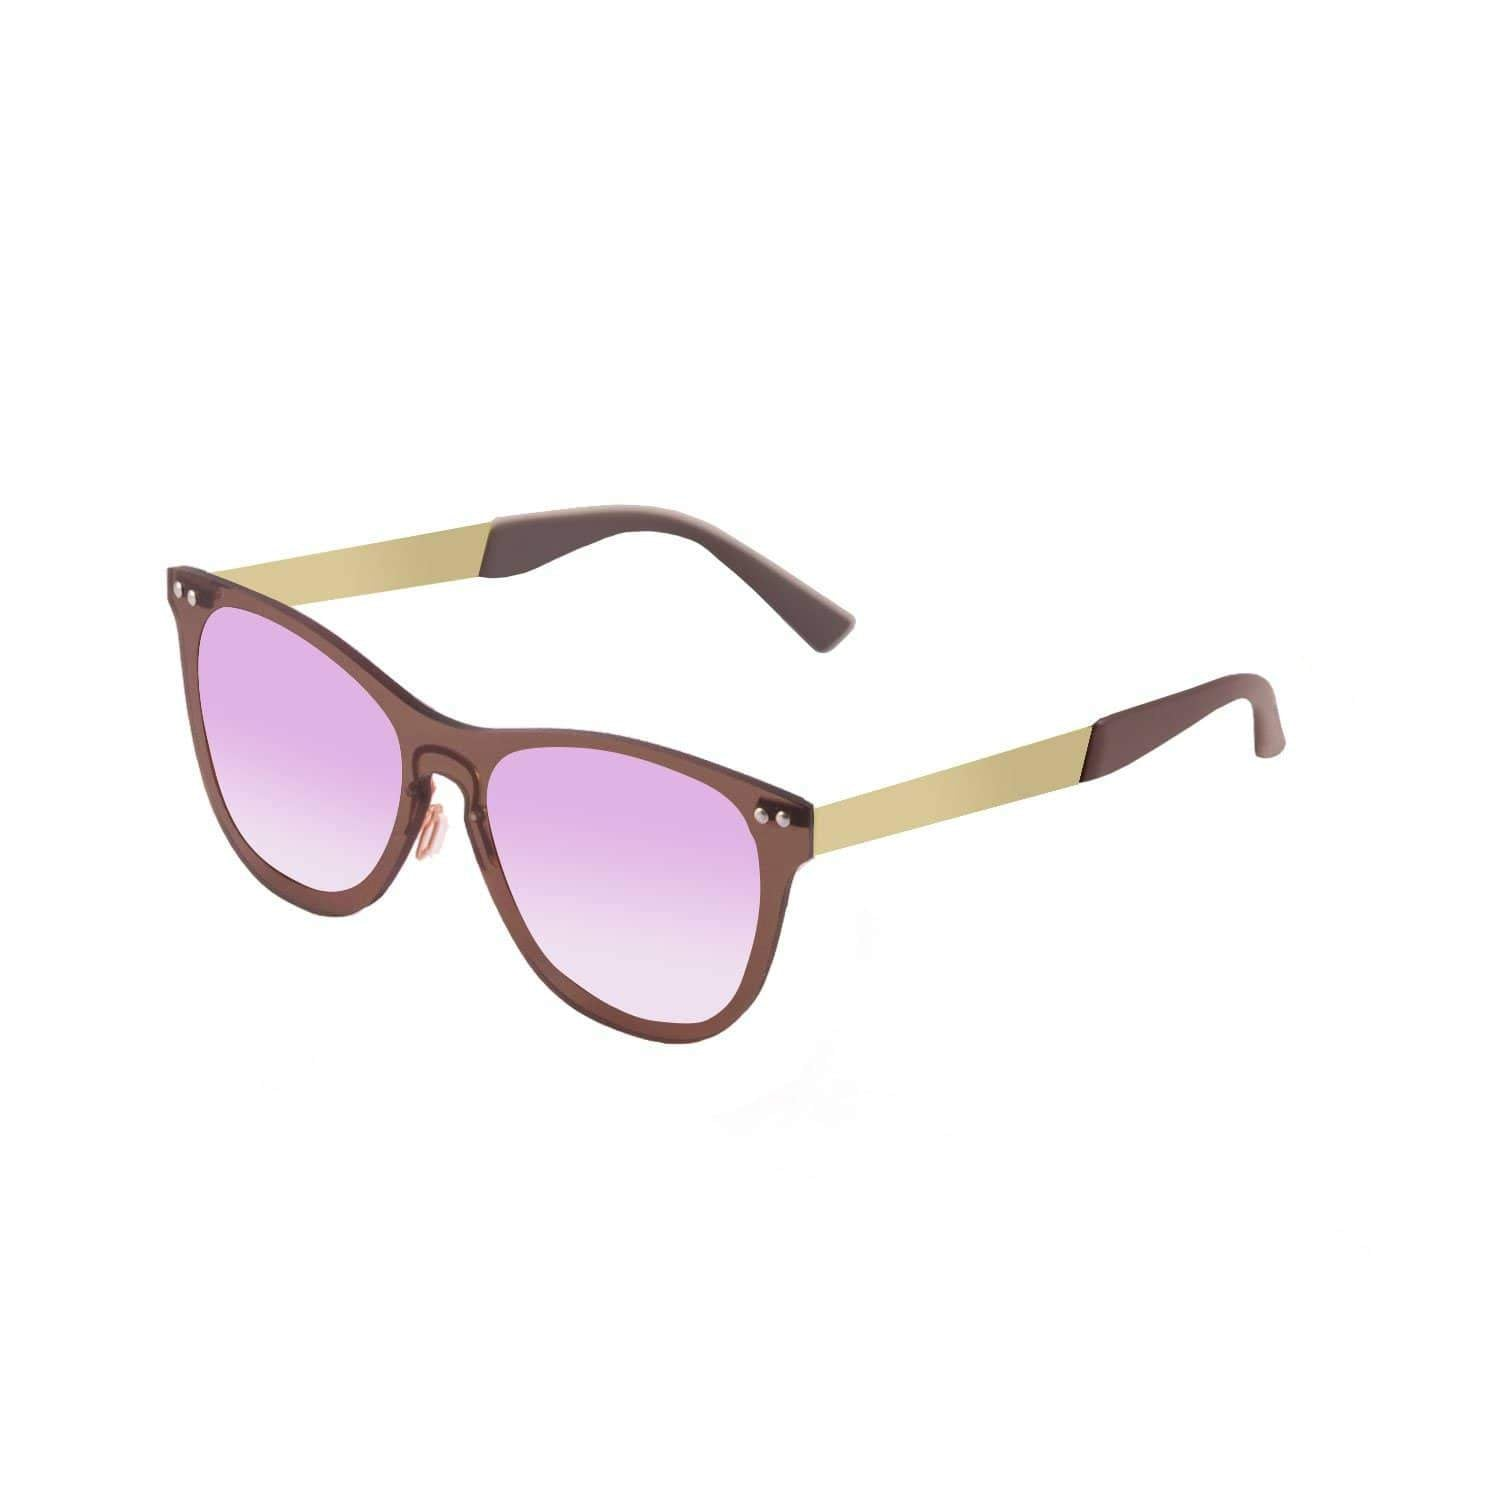 Ocean Sunglasses Accessories Sunglasses pink / NOSIZE Ocean Sunglasses - FLORENCIA